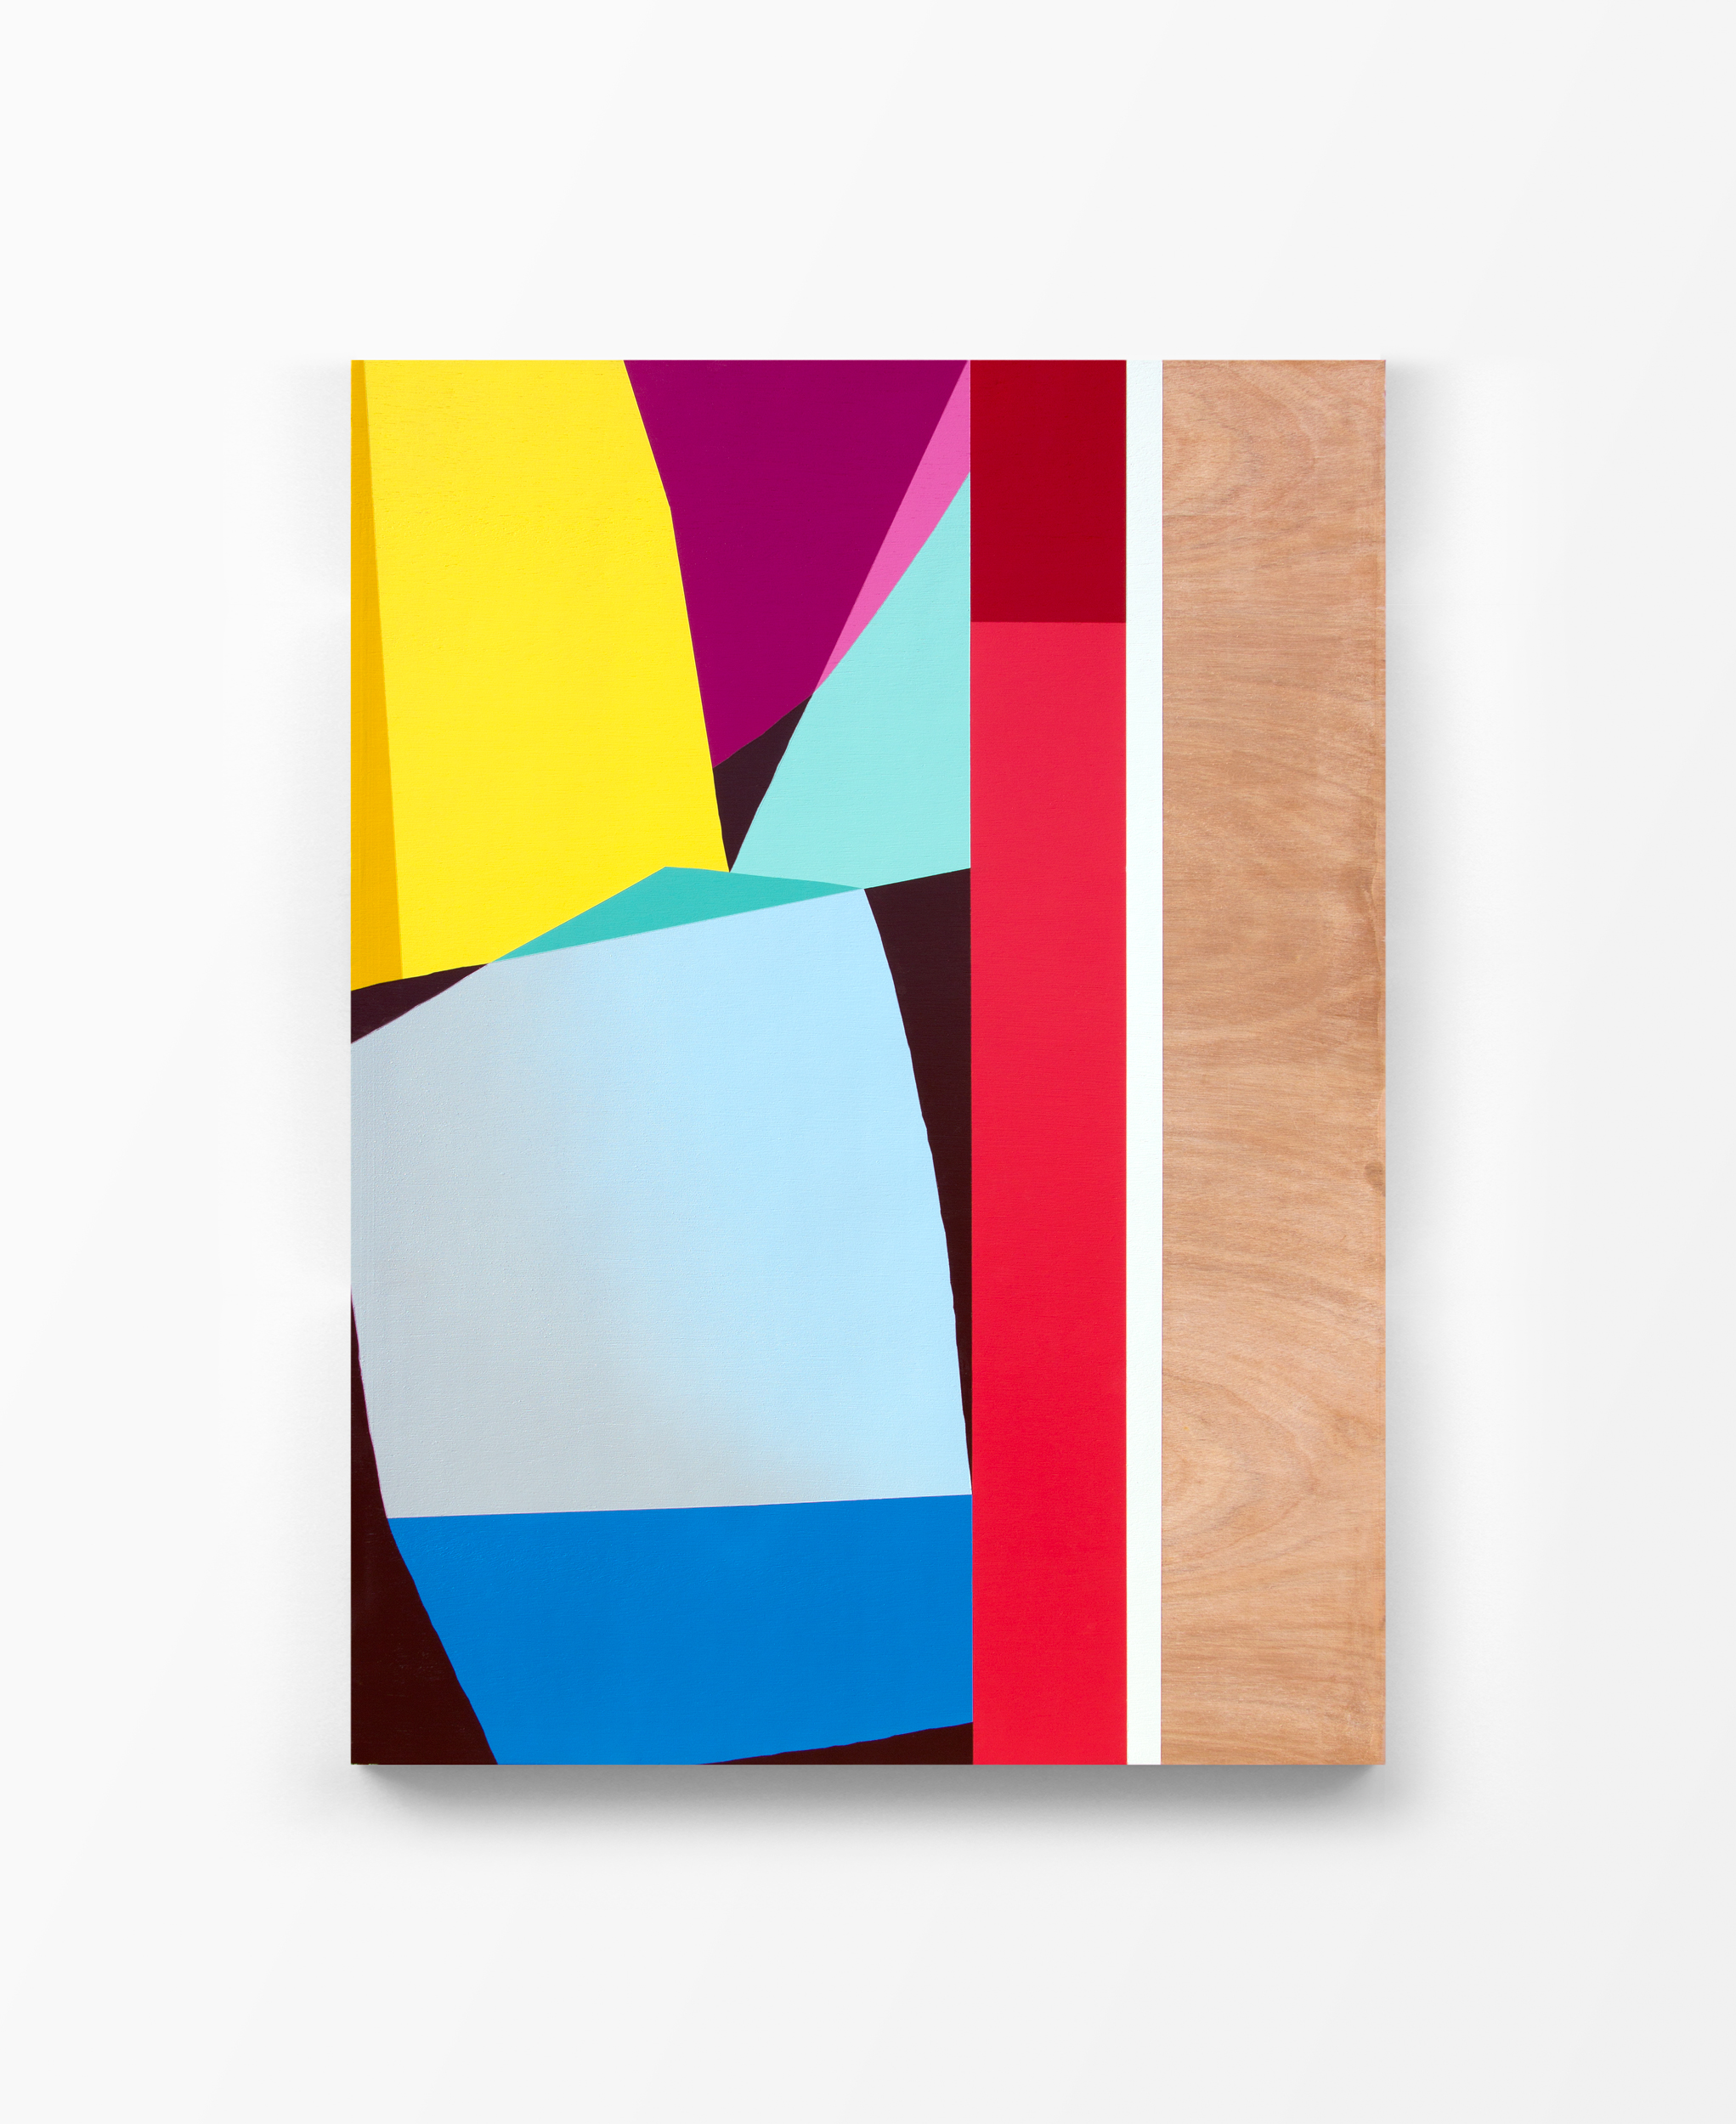 Untitled, 2017 Spray paint and polyurethane on birch panel 30 x 40 x 1.5 inches